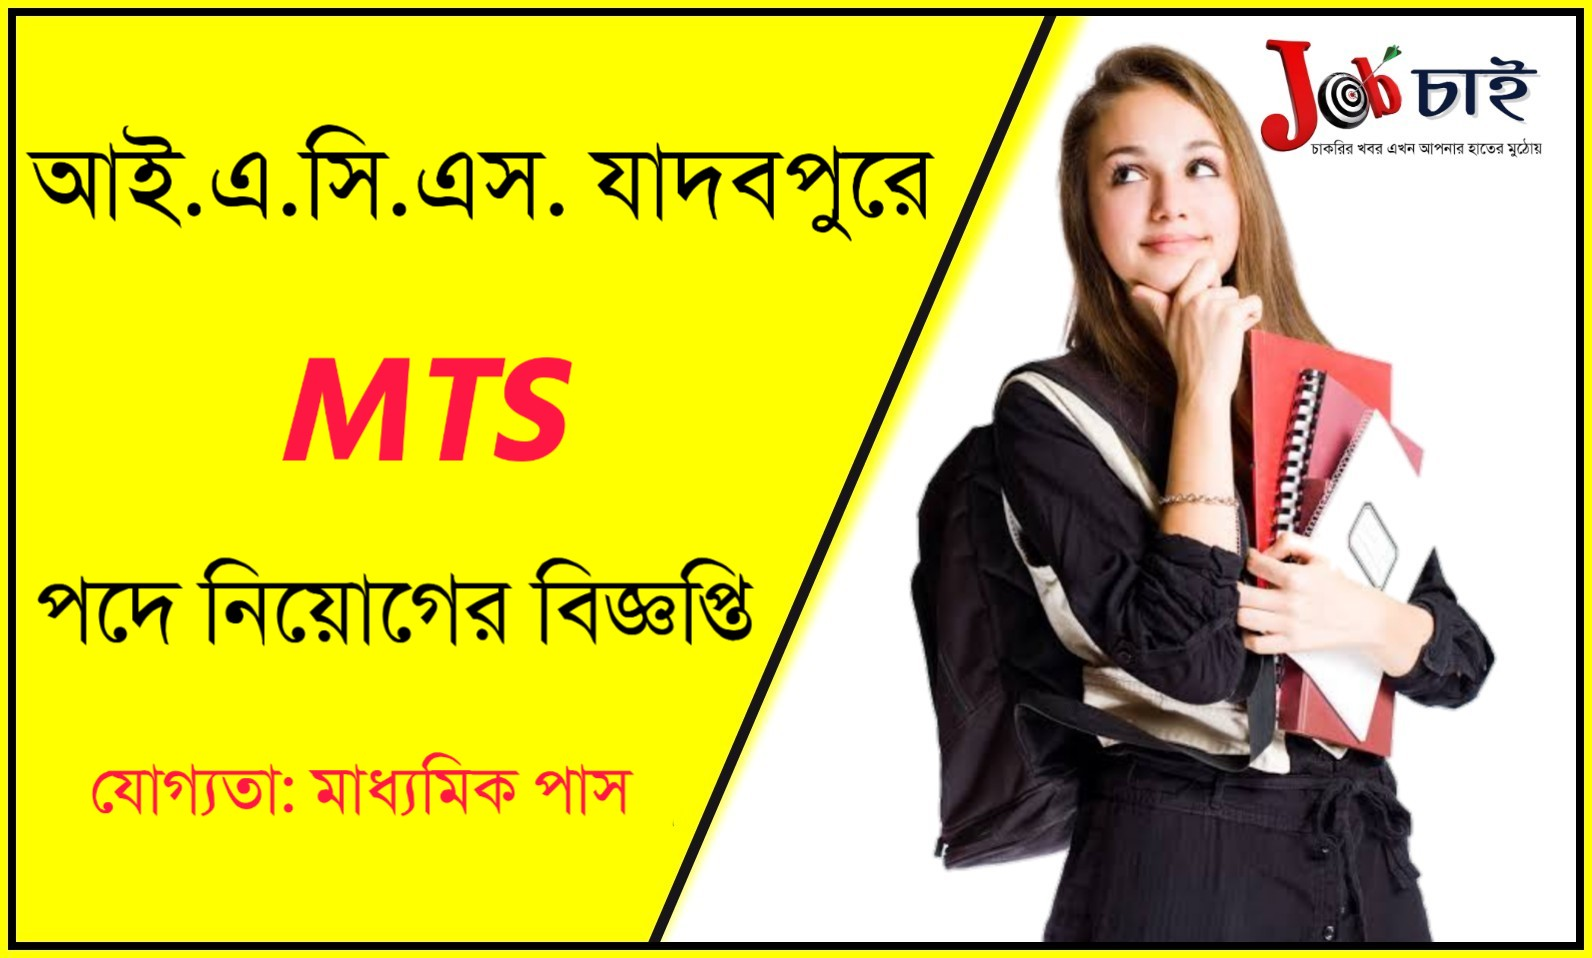 IACS Jadavpur Recruitment - Apply for 44 MTS Post | Application Form Download